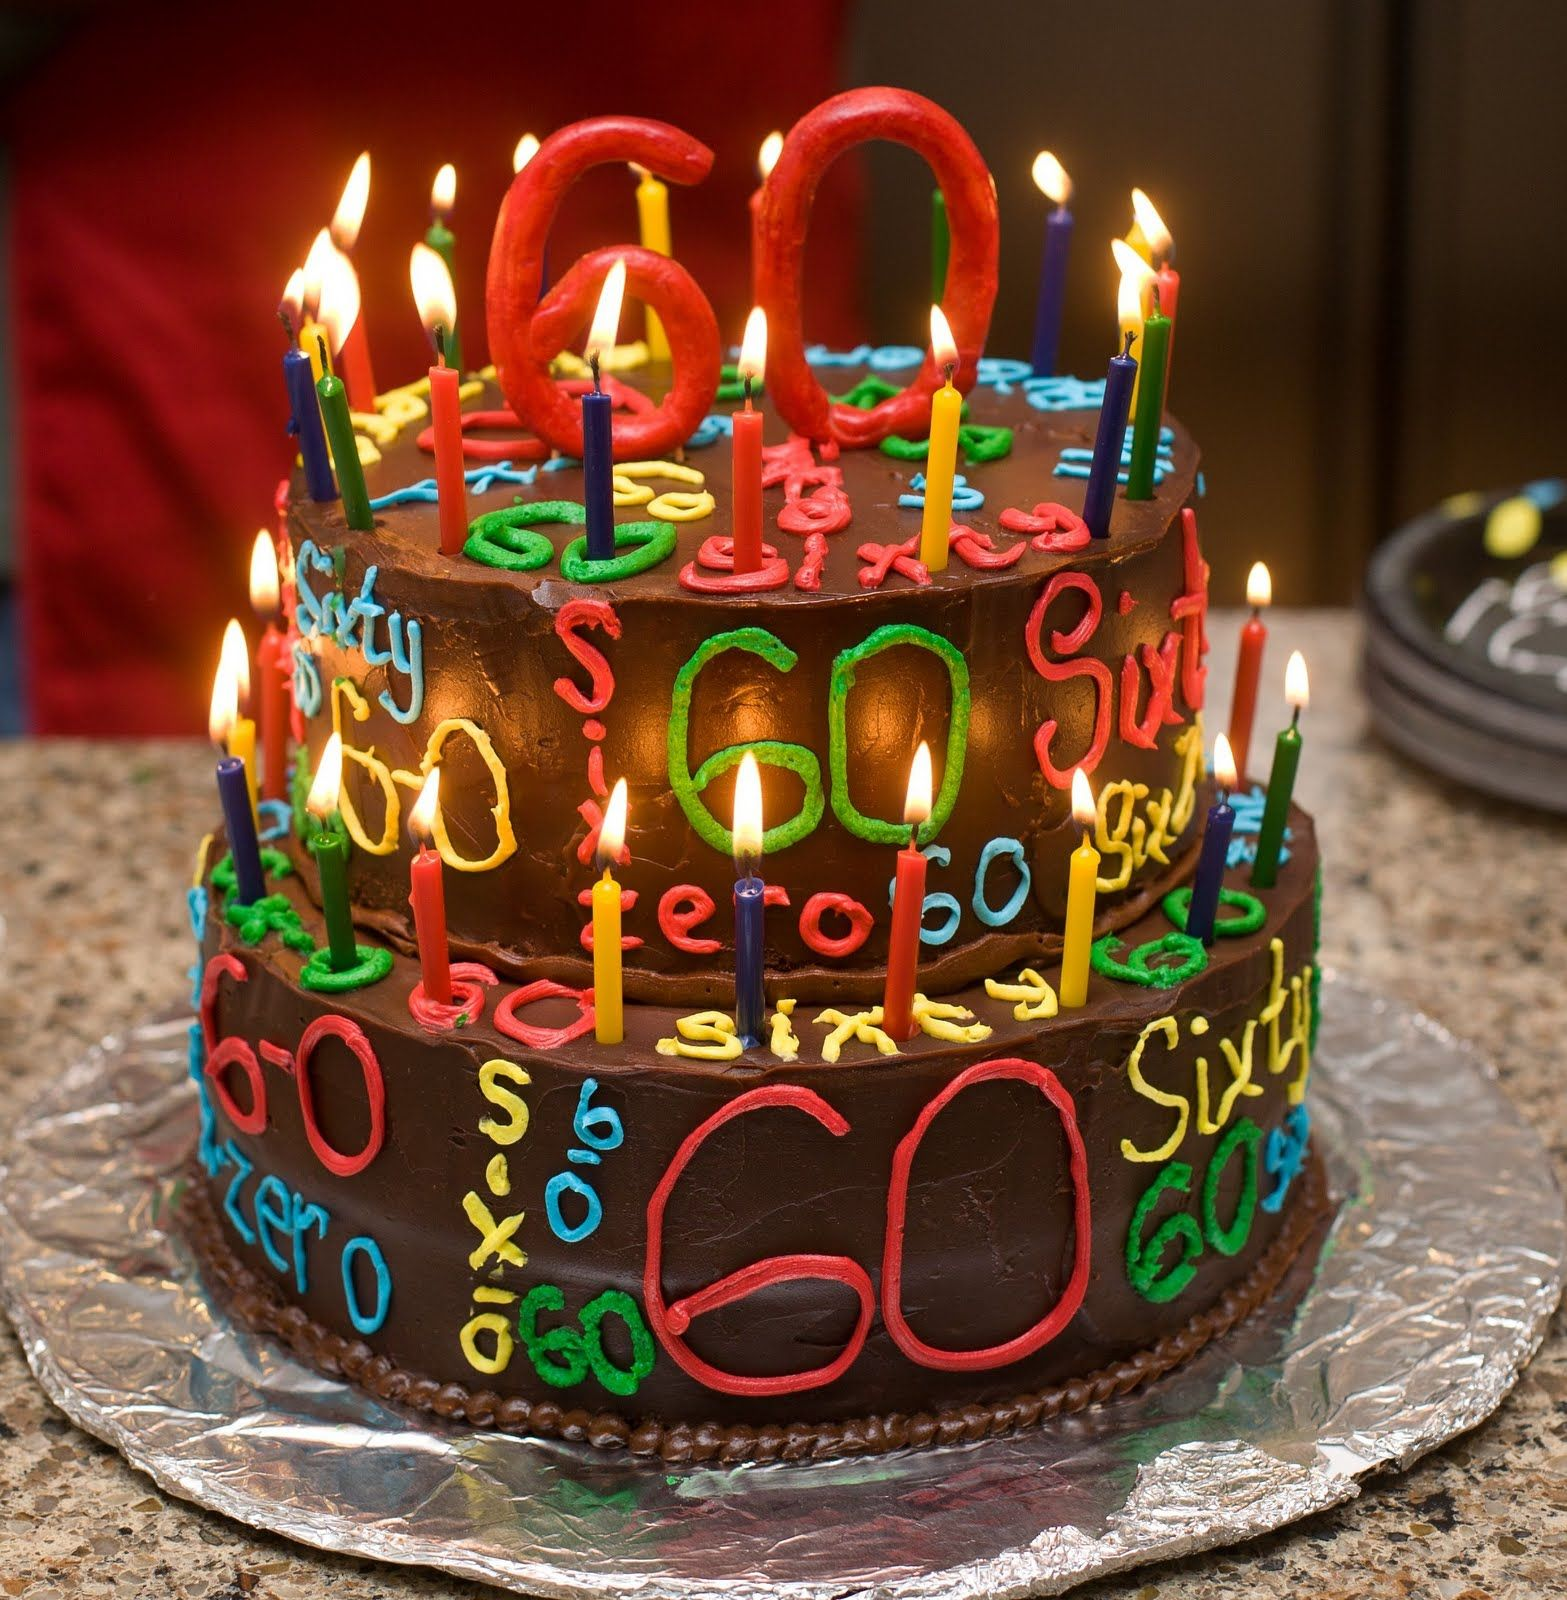 24+ 60th birthday cake ideas for dad trends